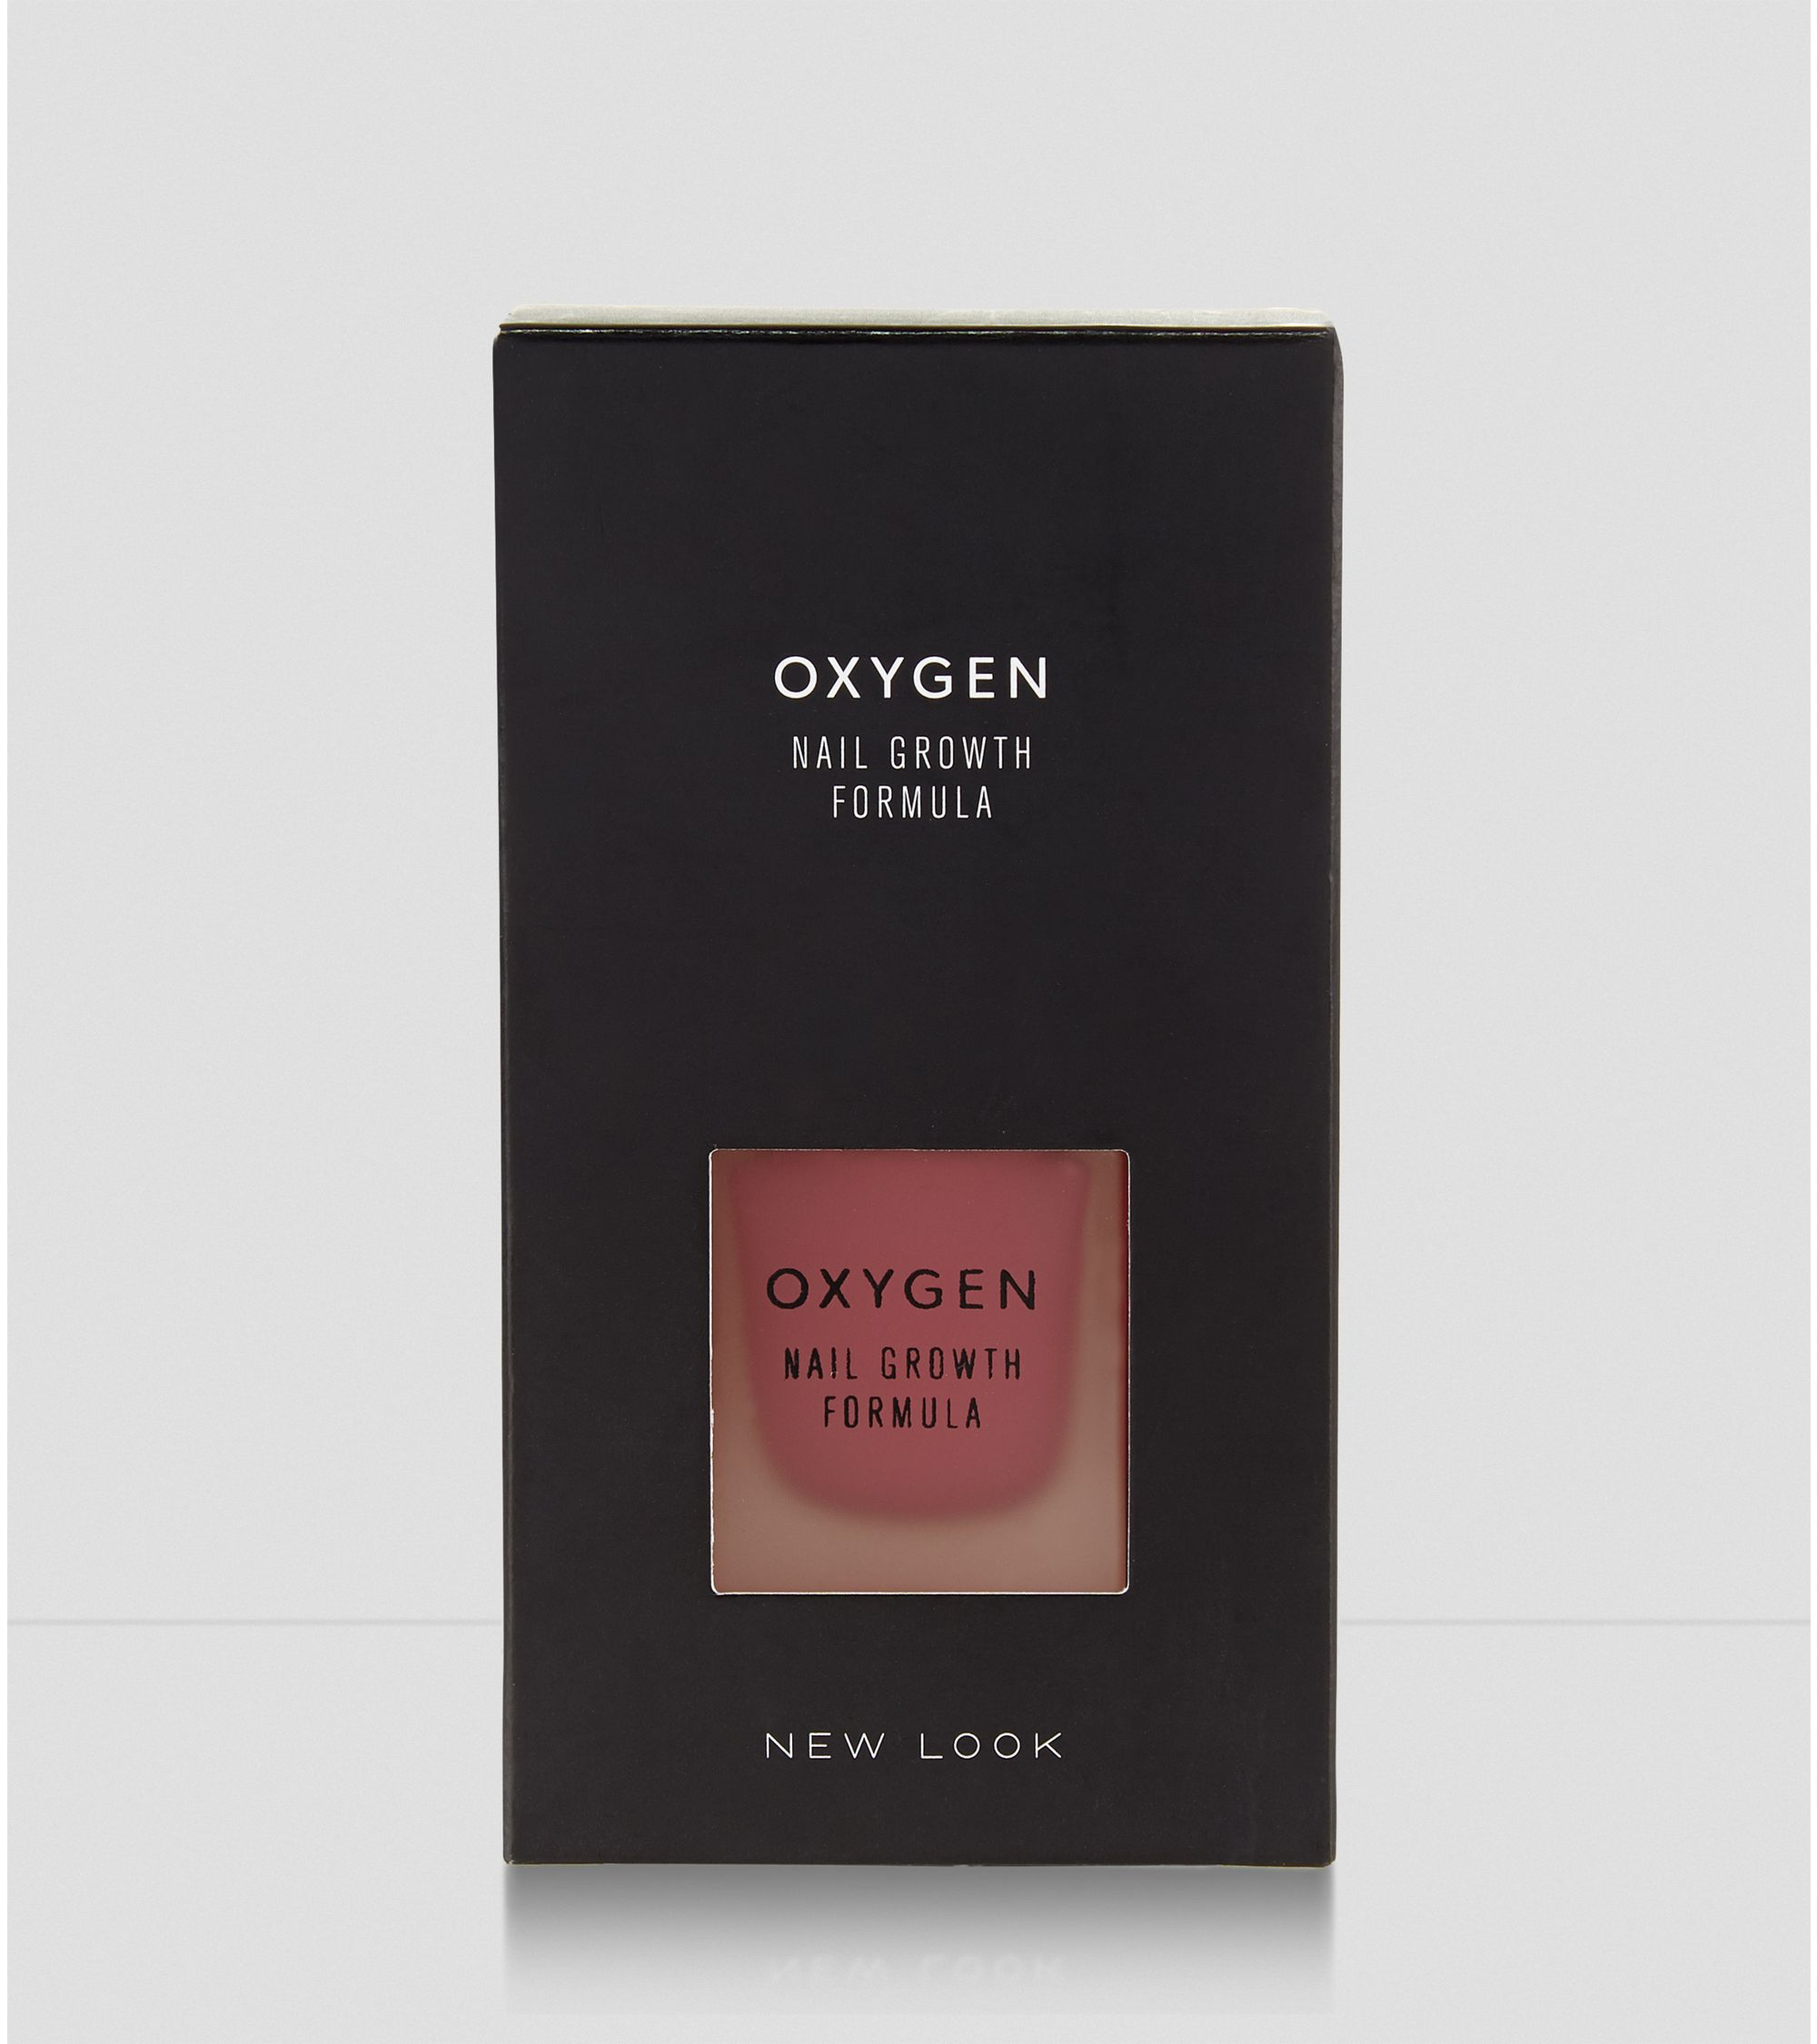 Oxygen Nail Growth Formula - New Look at £3.99 | love the brands